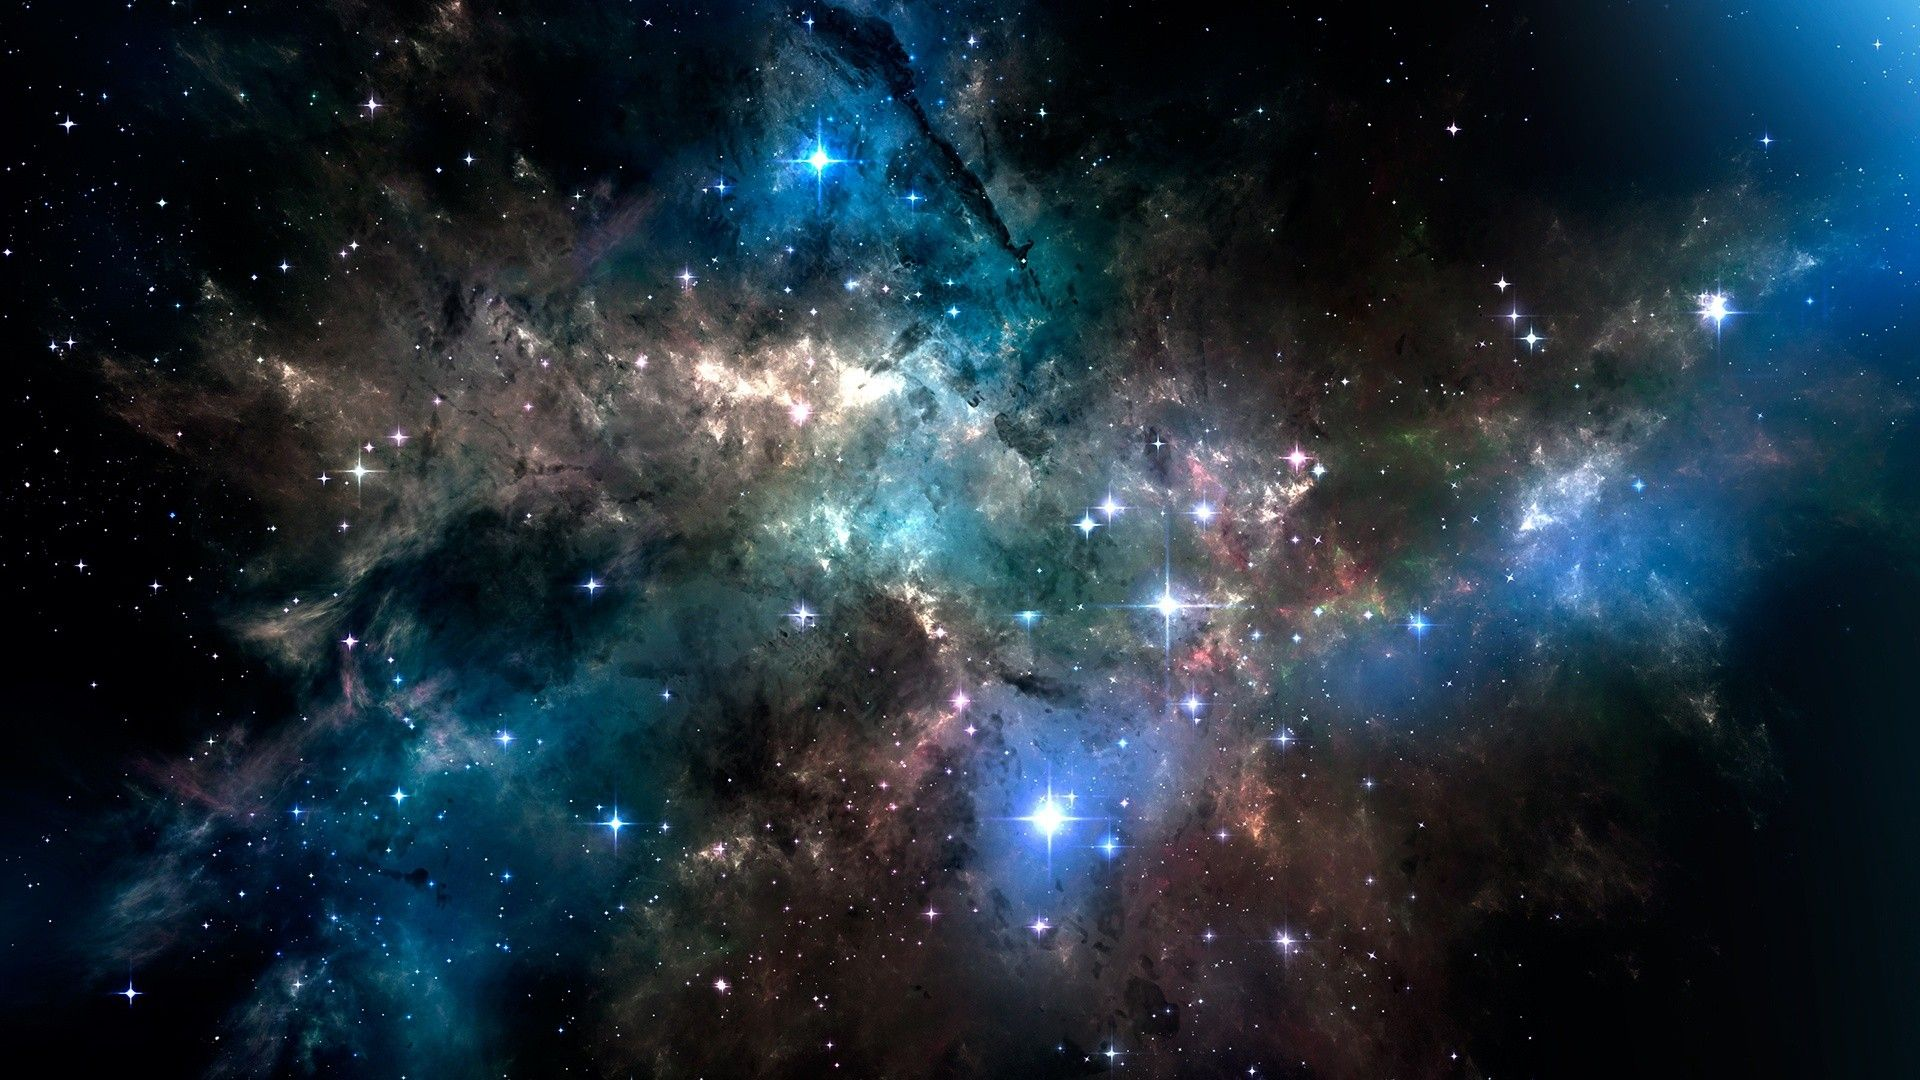 Real Hd Space Wallpapers Top Free Real Hd Space Backgrounds